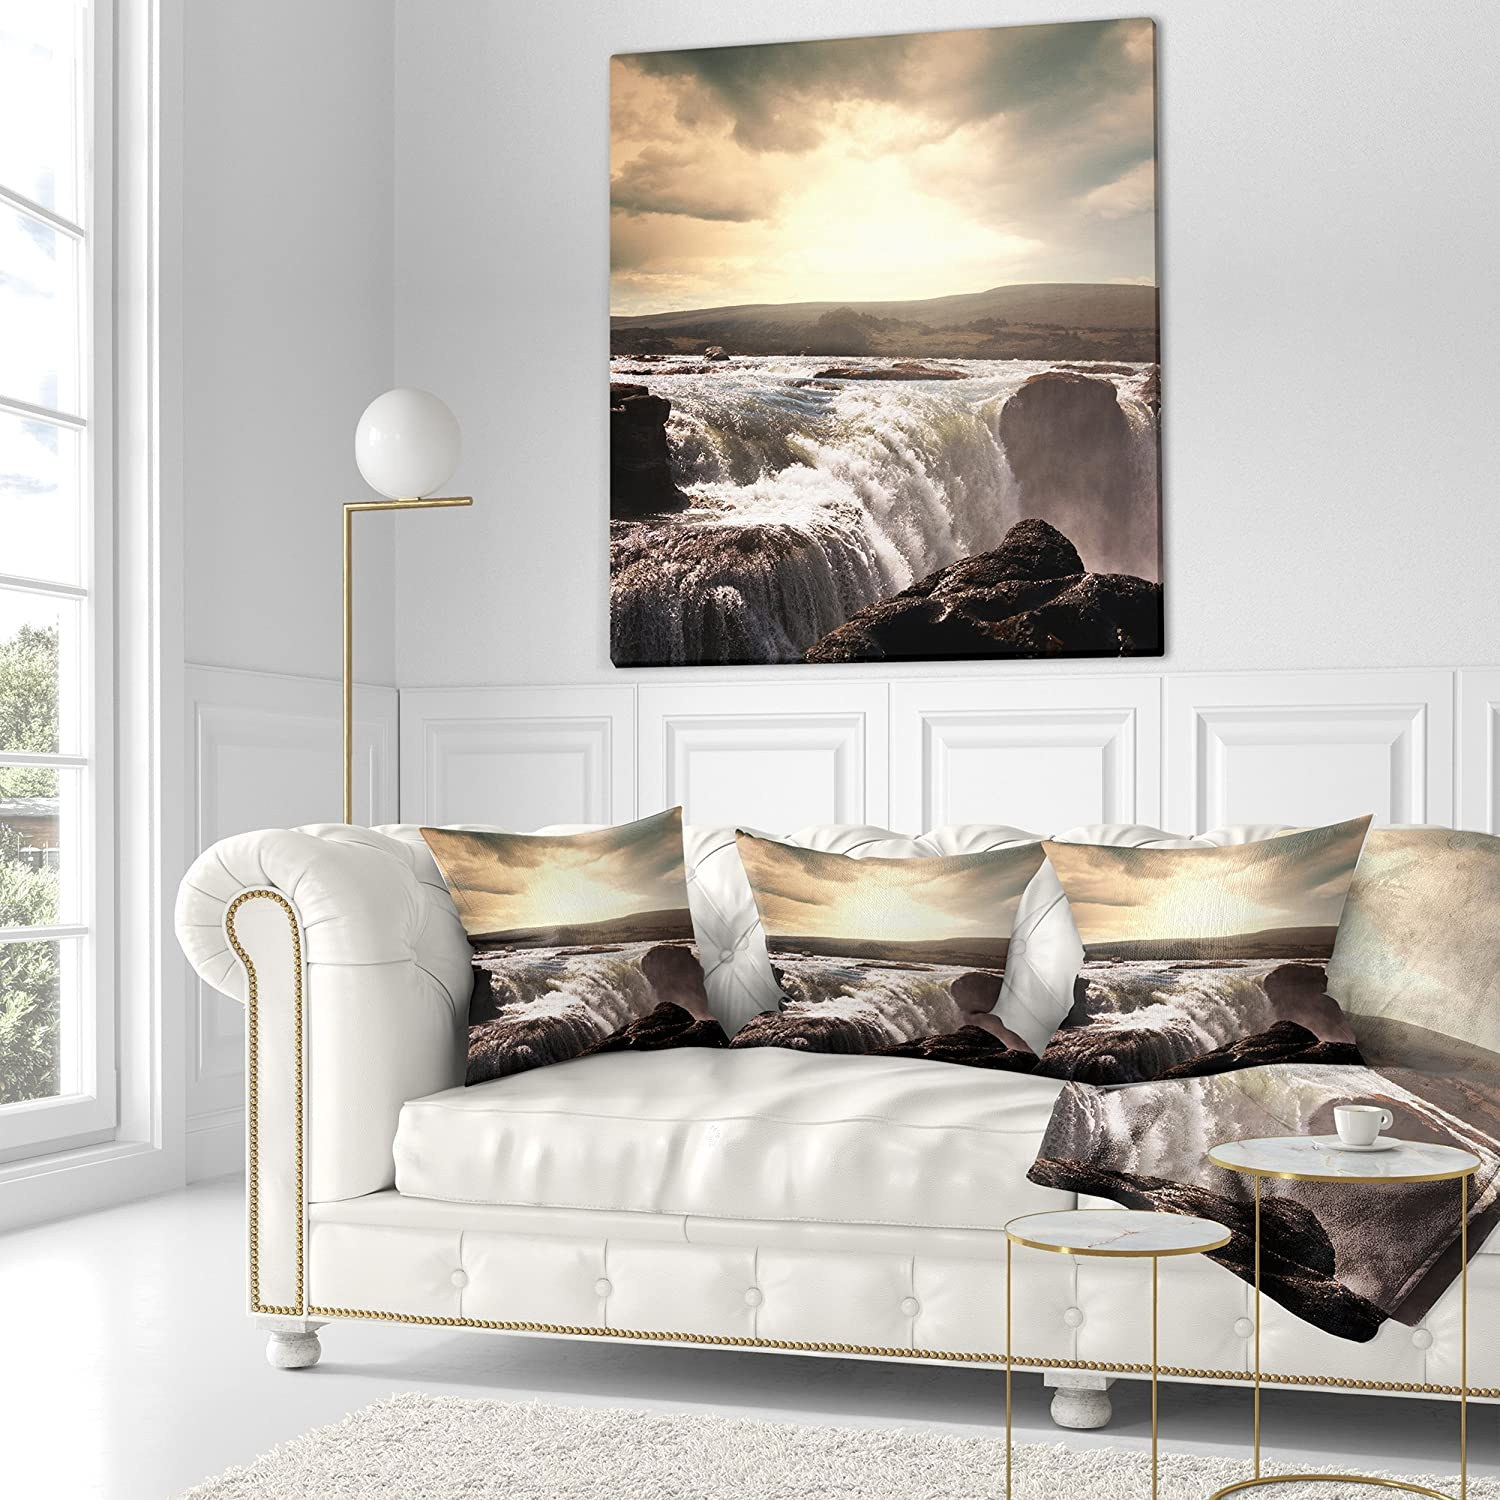 Insert Side Designart CU12721-18-18 Black and White Iceland Waterfalls Landscape Printed Cushion Cover for Living Room x 18 in Sofa Throw Pillow 18 in in